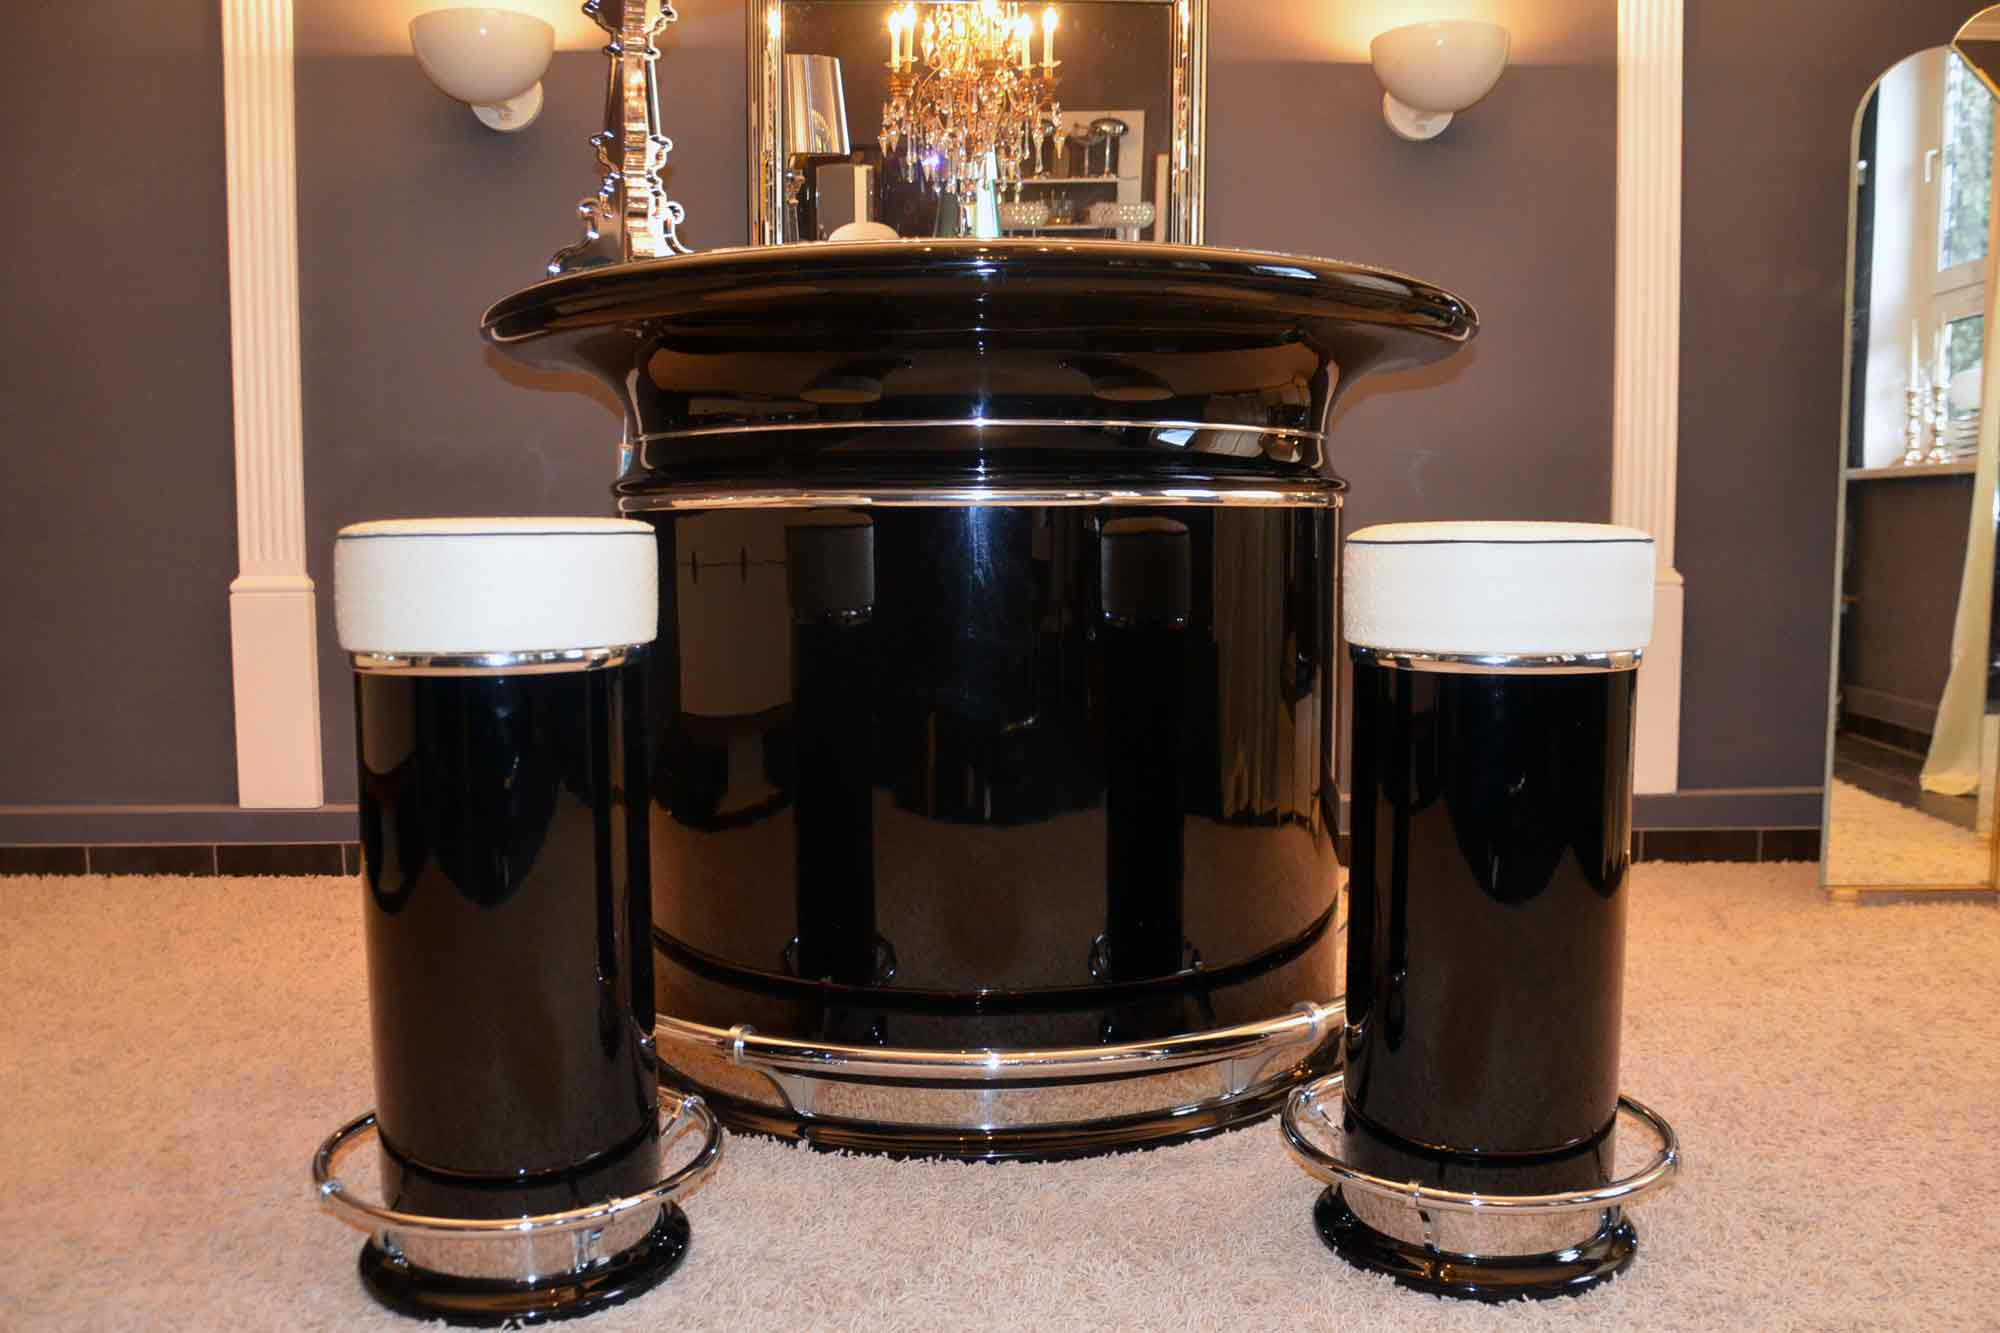 art deco bar artdeco depot. Black Bedroom Furniture Sets. Home Design Ideas